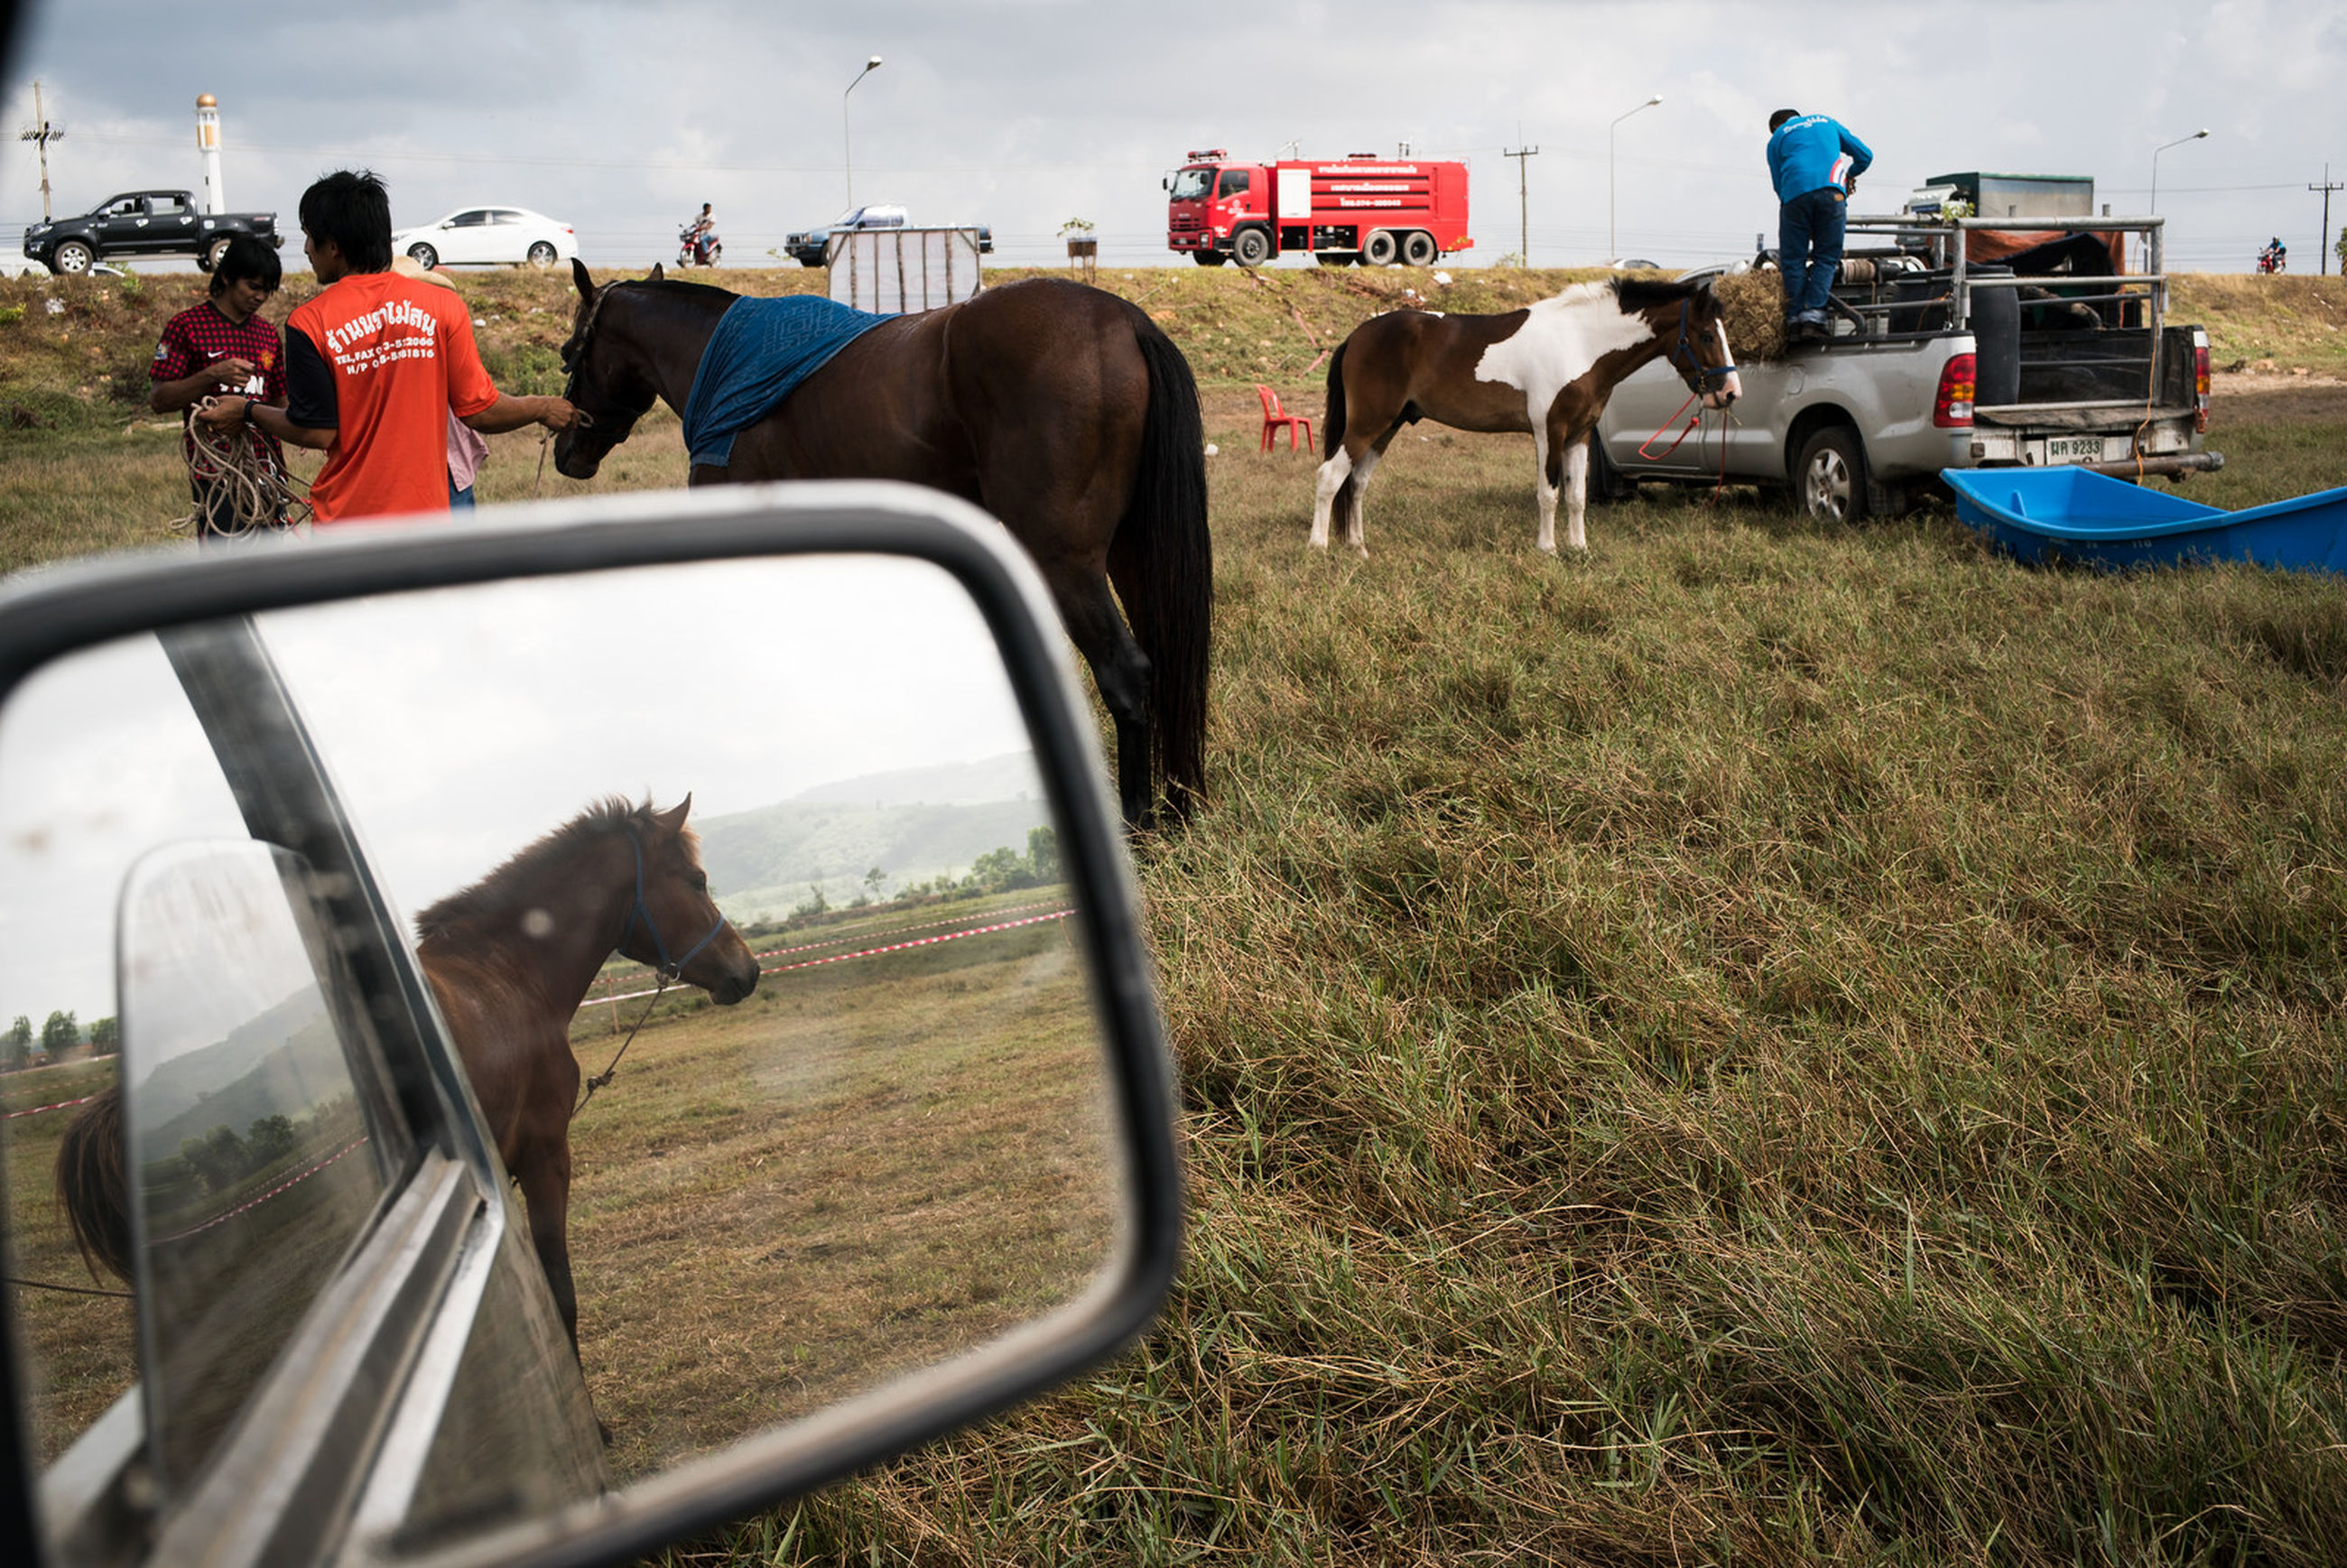 land vehicle, mode of transport, transportation, domestic animals, field, grass, car, day, outdoors, livestock, safety, street, mammal, sky, protection, animal themes, horse, stationary, incidental people, men